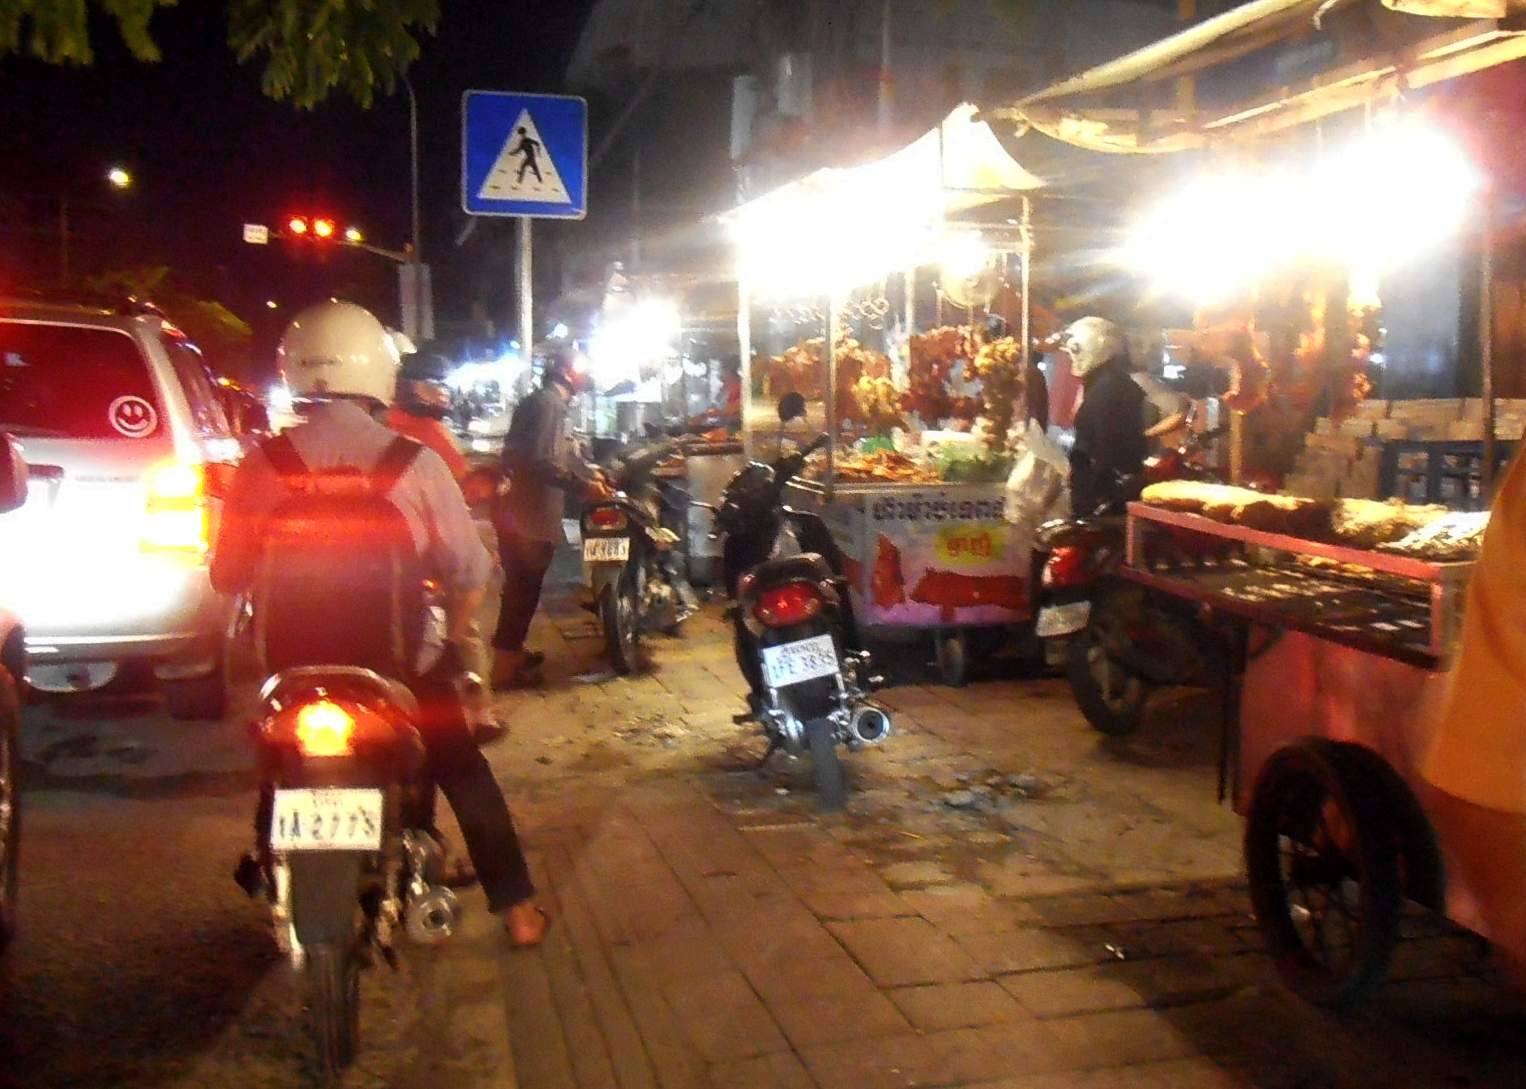 Night food market on street